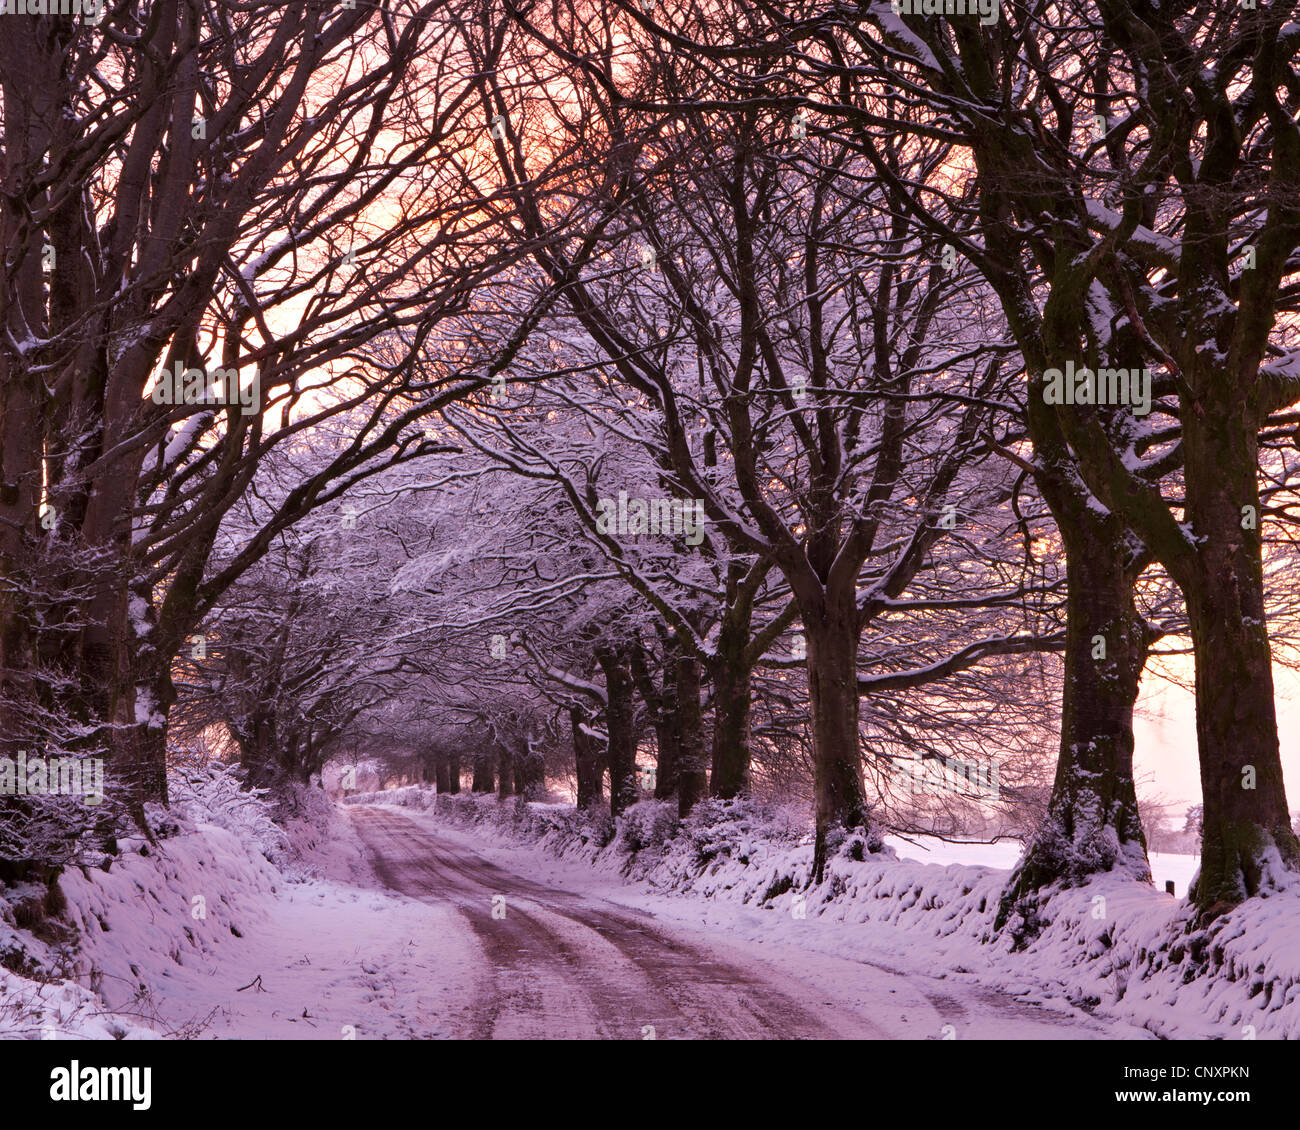 Tree lined lane in snow, Exmoor, Somerset, England. Winter (January) 2012. - Stock Image